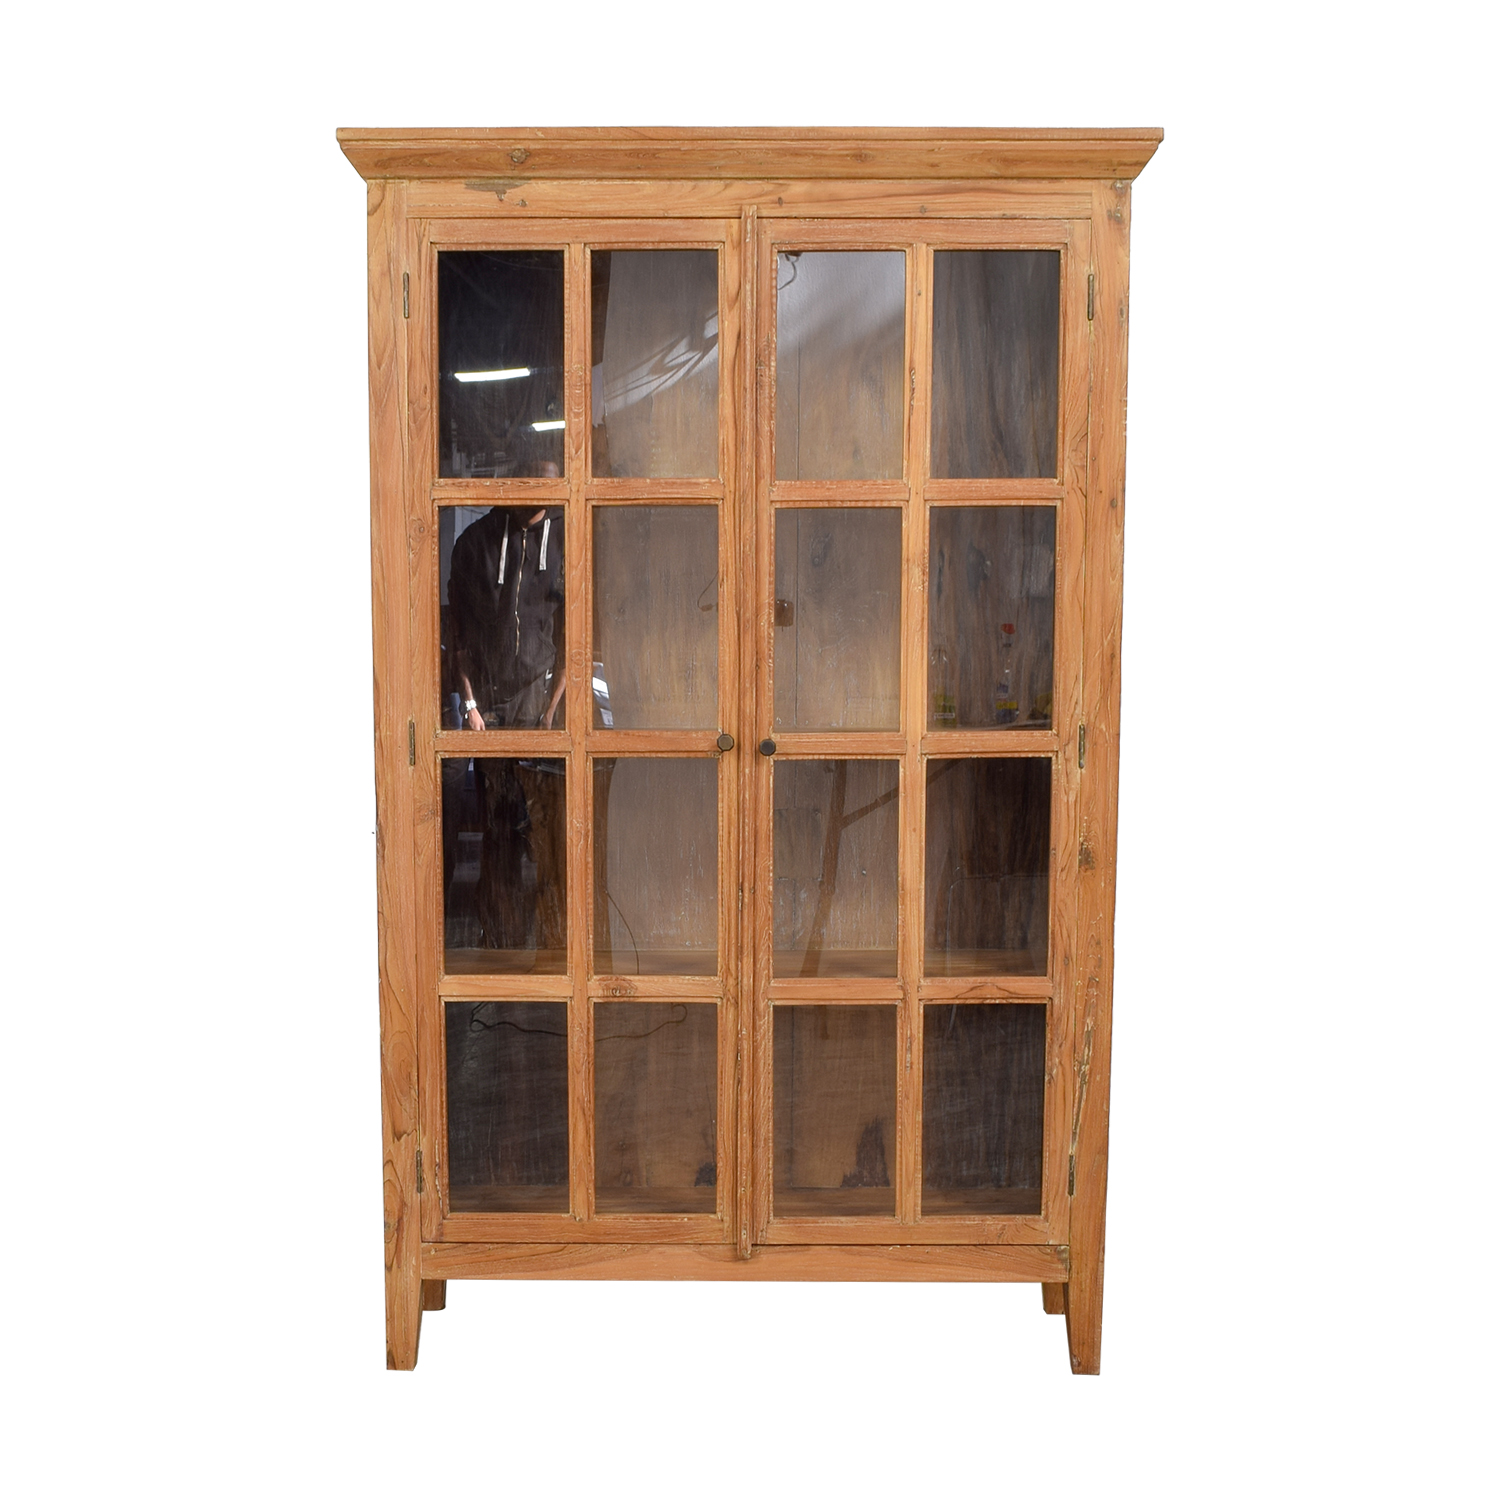 Wood Hutch with French Doors second hand